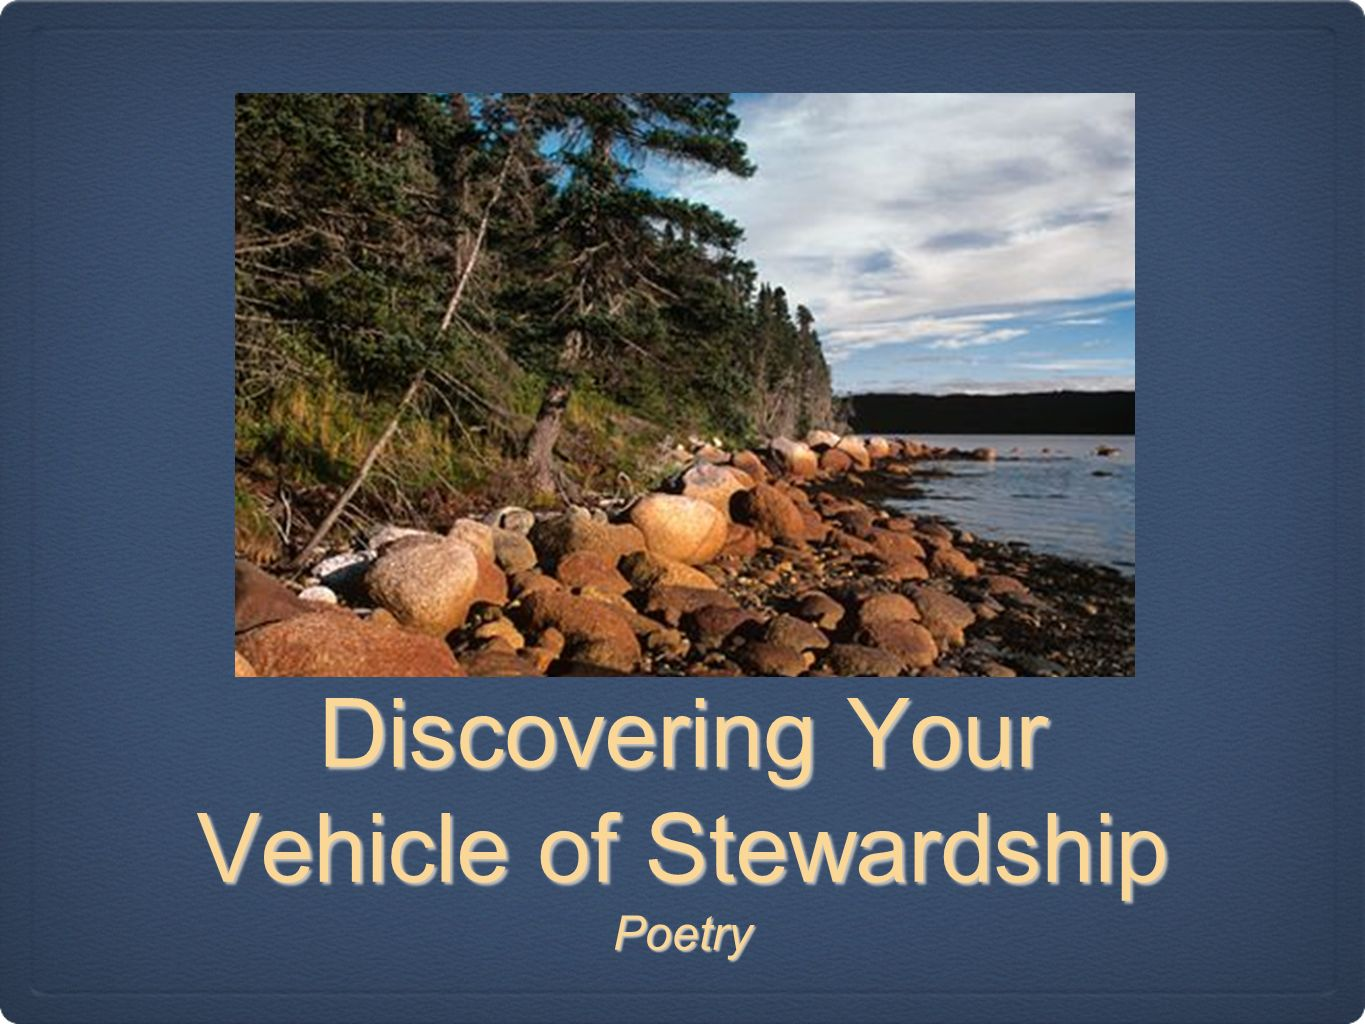 Discovering Your Vehicle of Stewardship